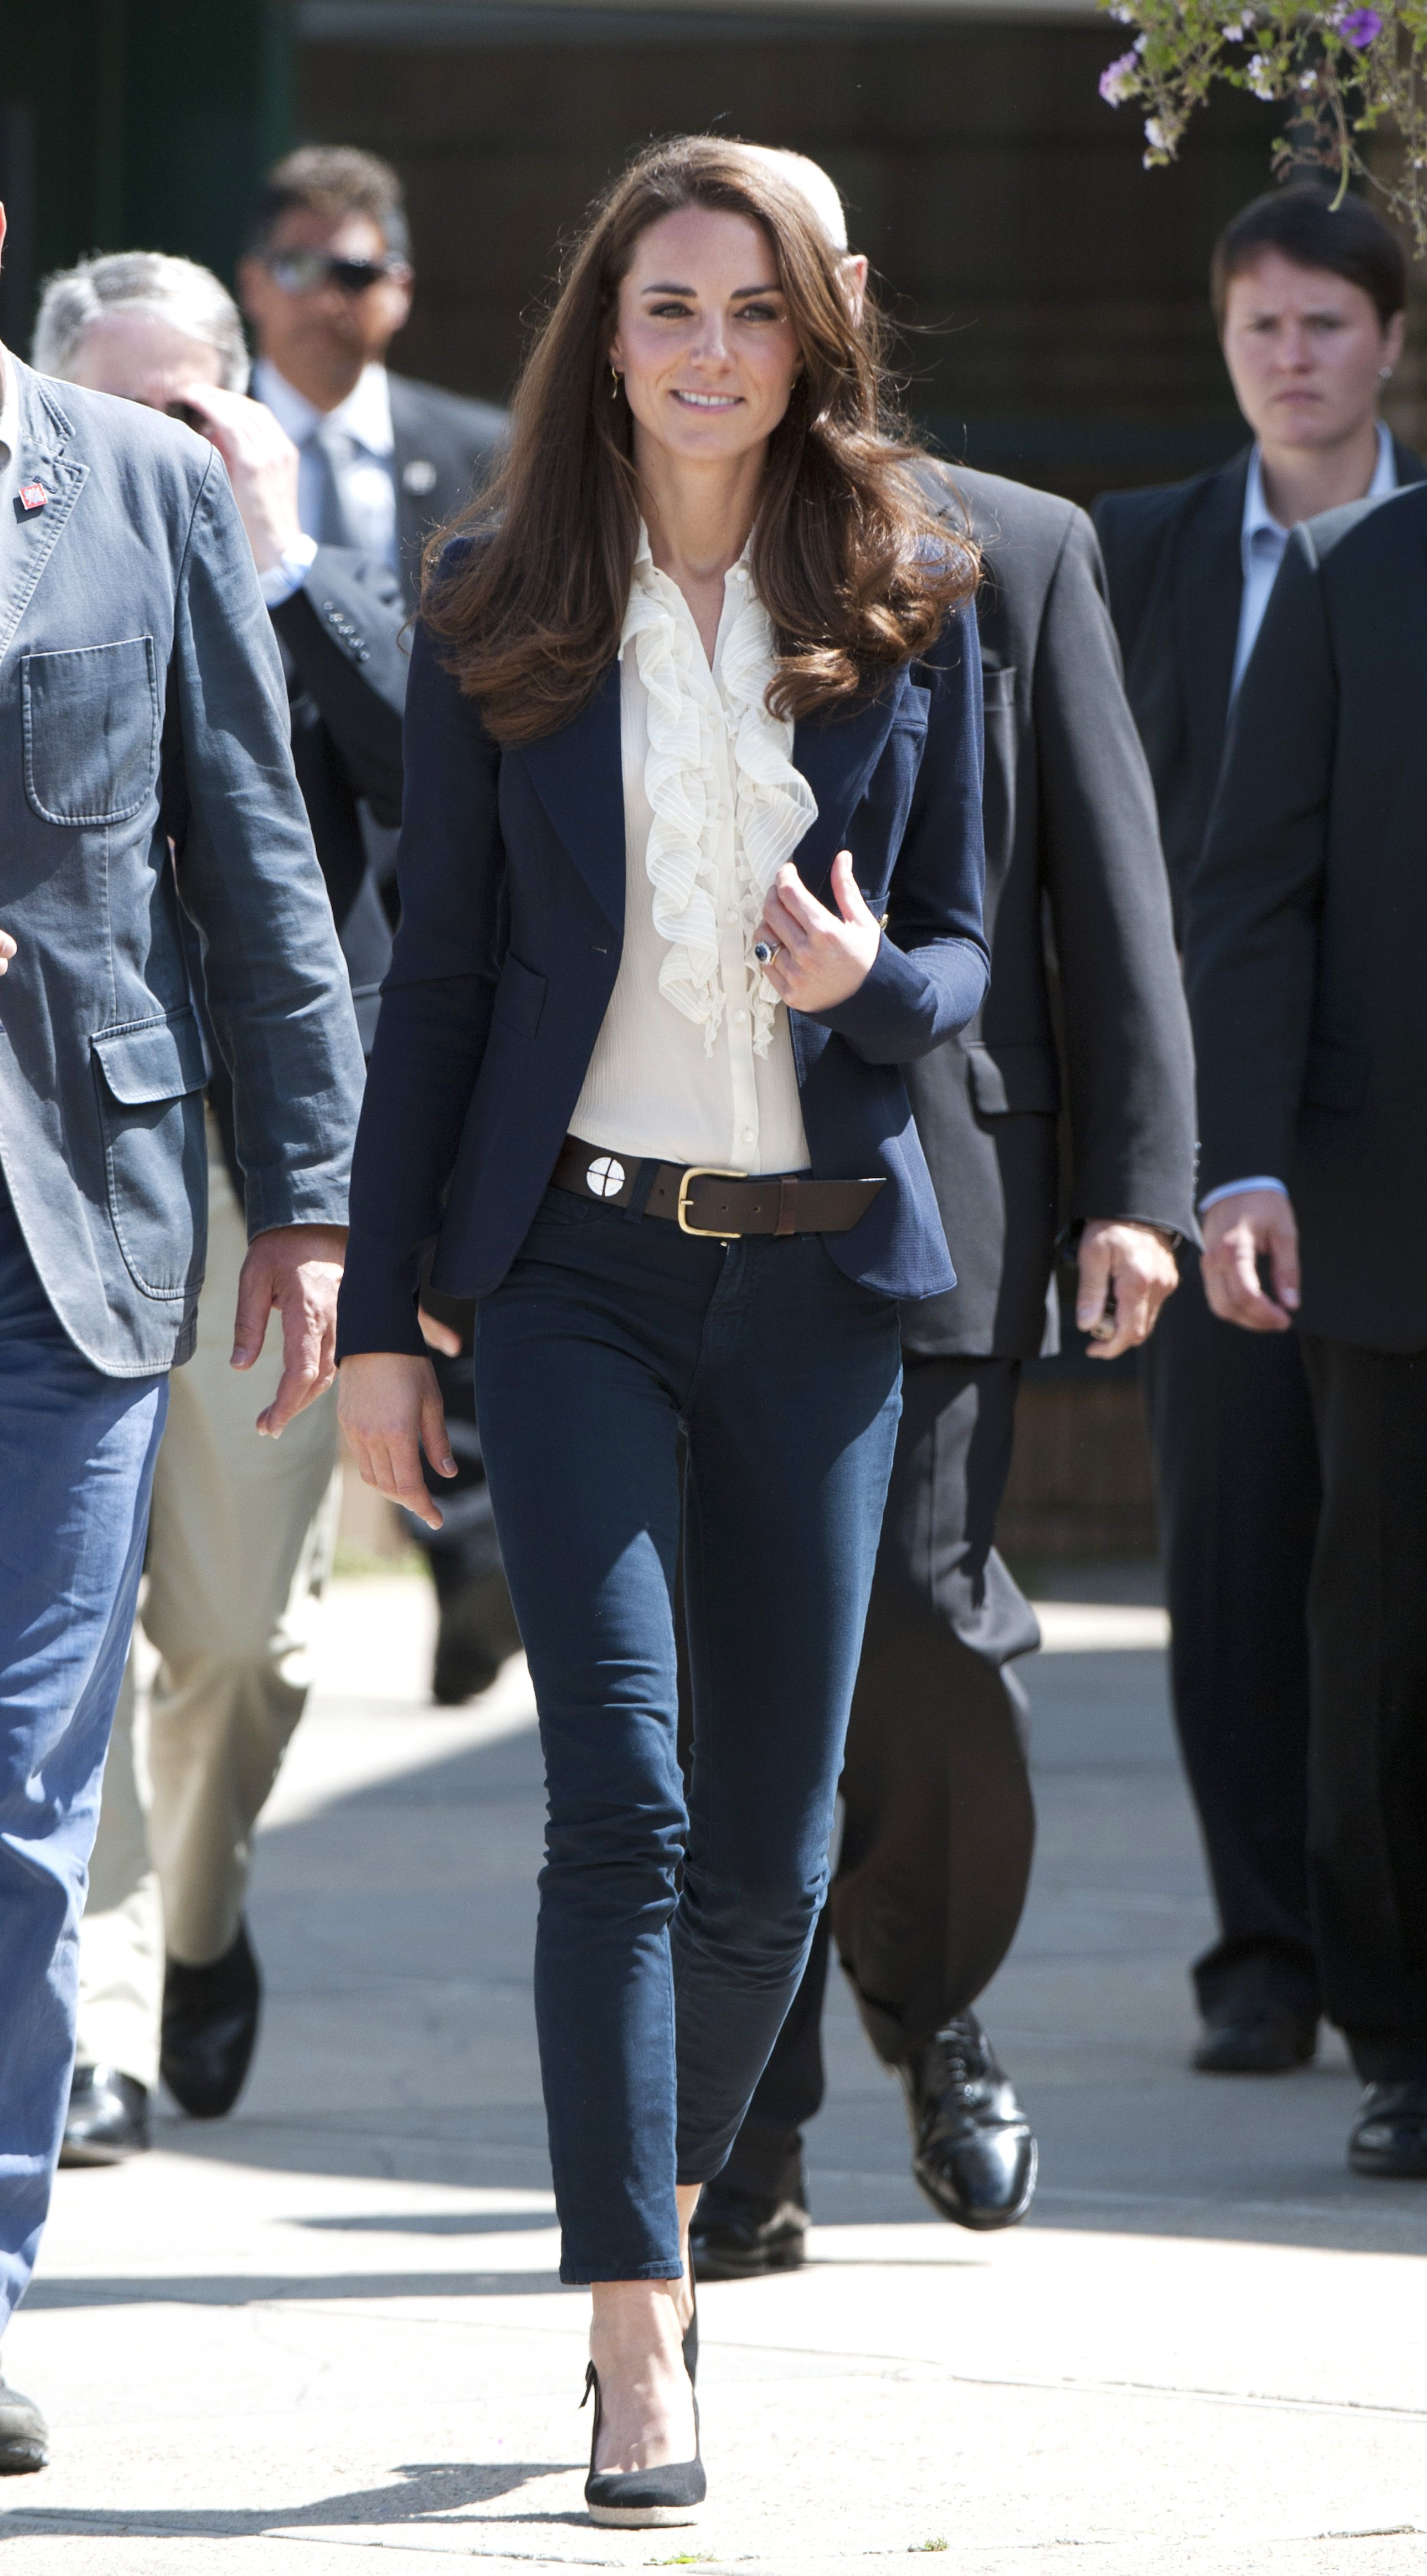 58568a8d73f Kate Middleton Jeans and Pants Outfits - Kate Middleton s Casual Outfits  and Style